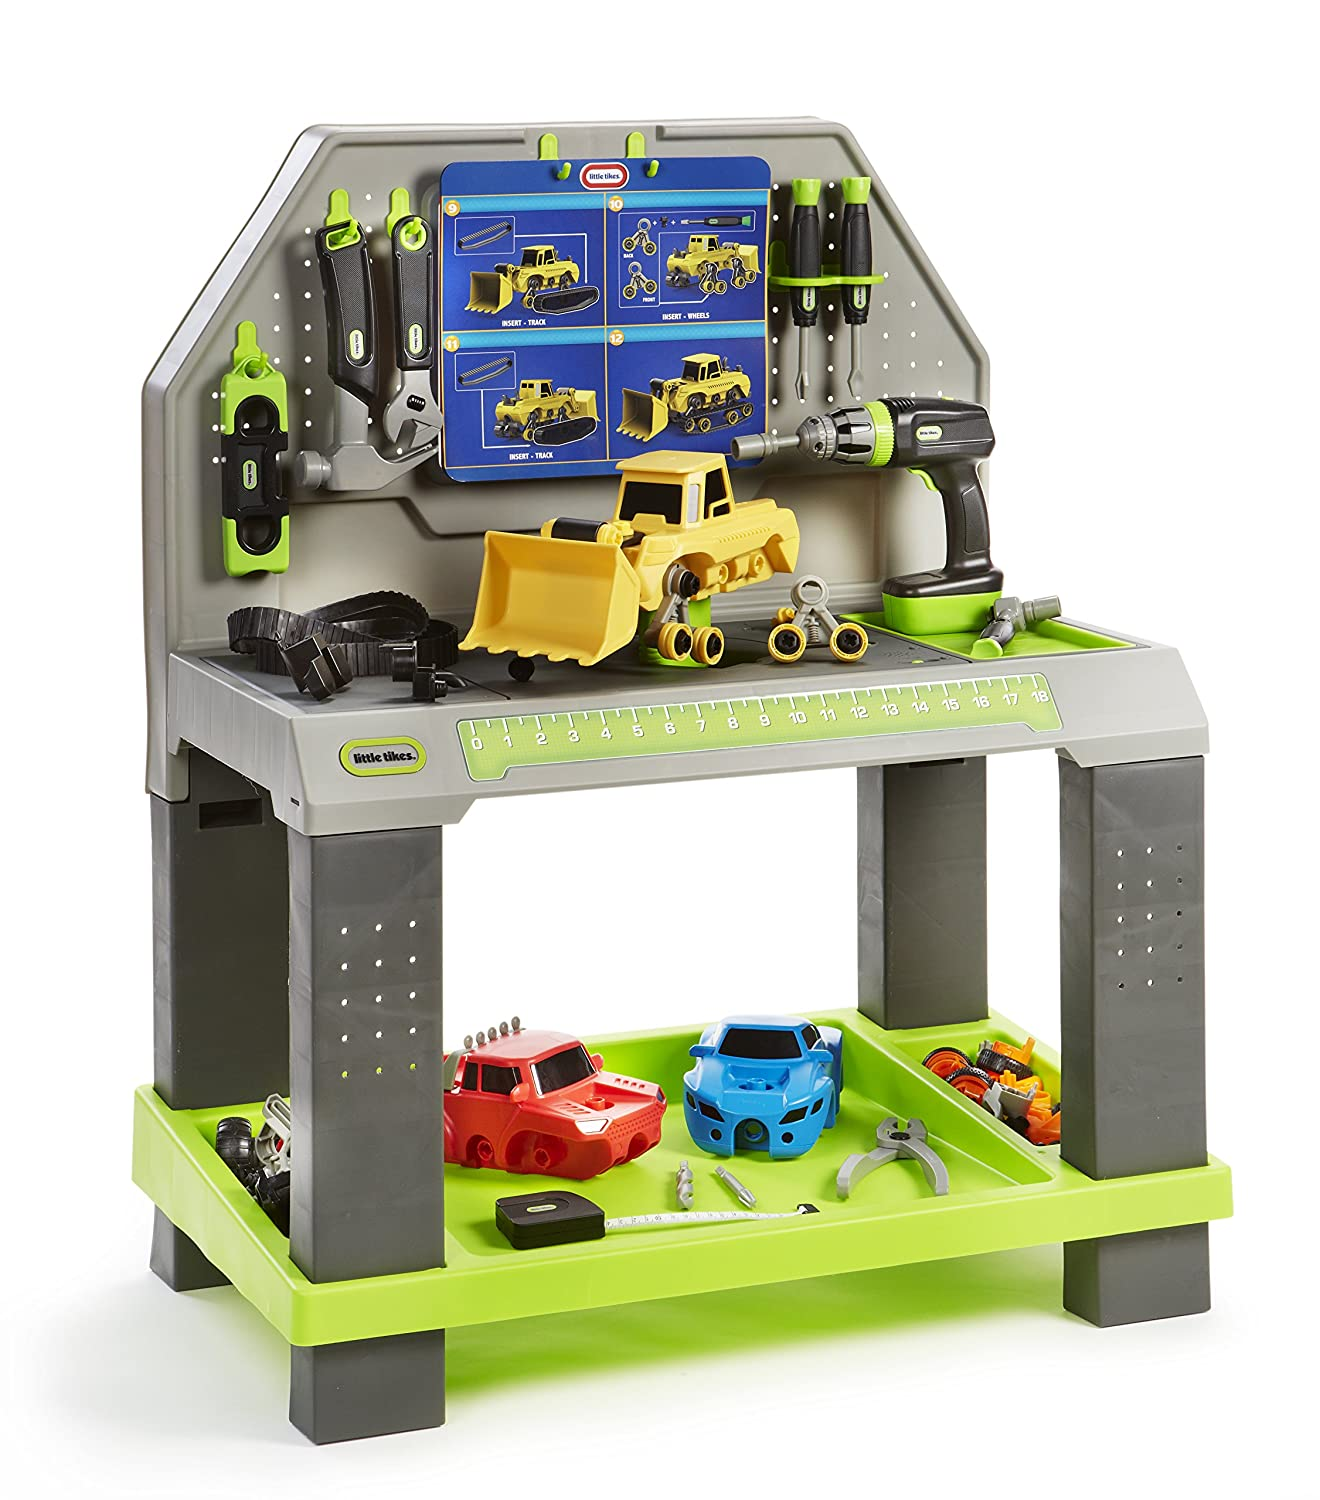 Top 9 Best Kids Toy Tool Bench Reviews in 2019 7